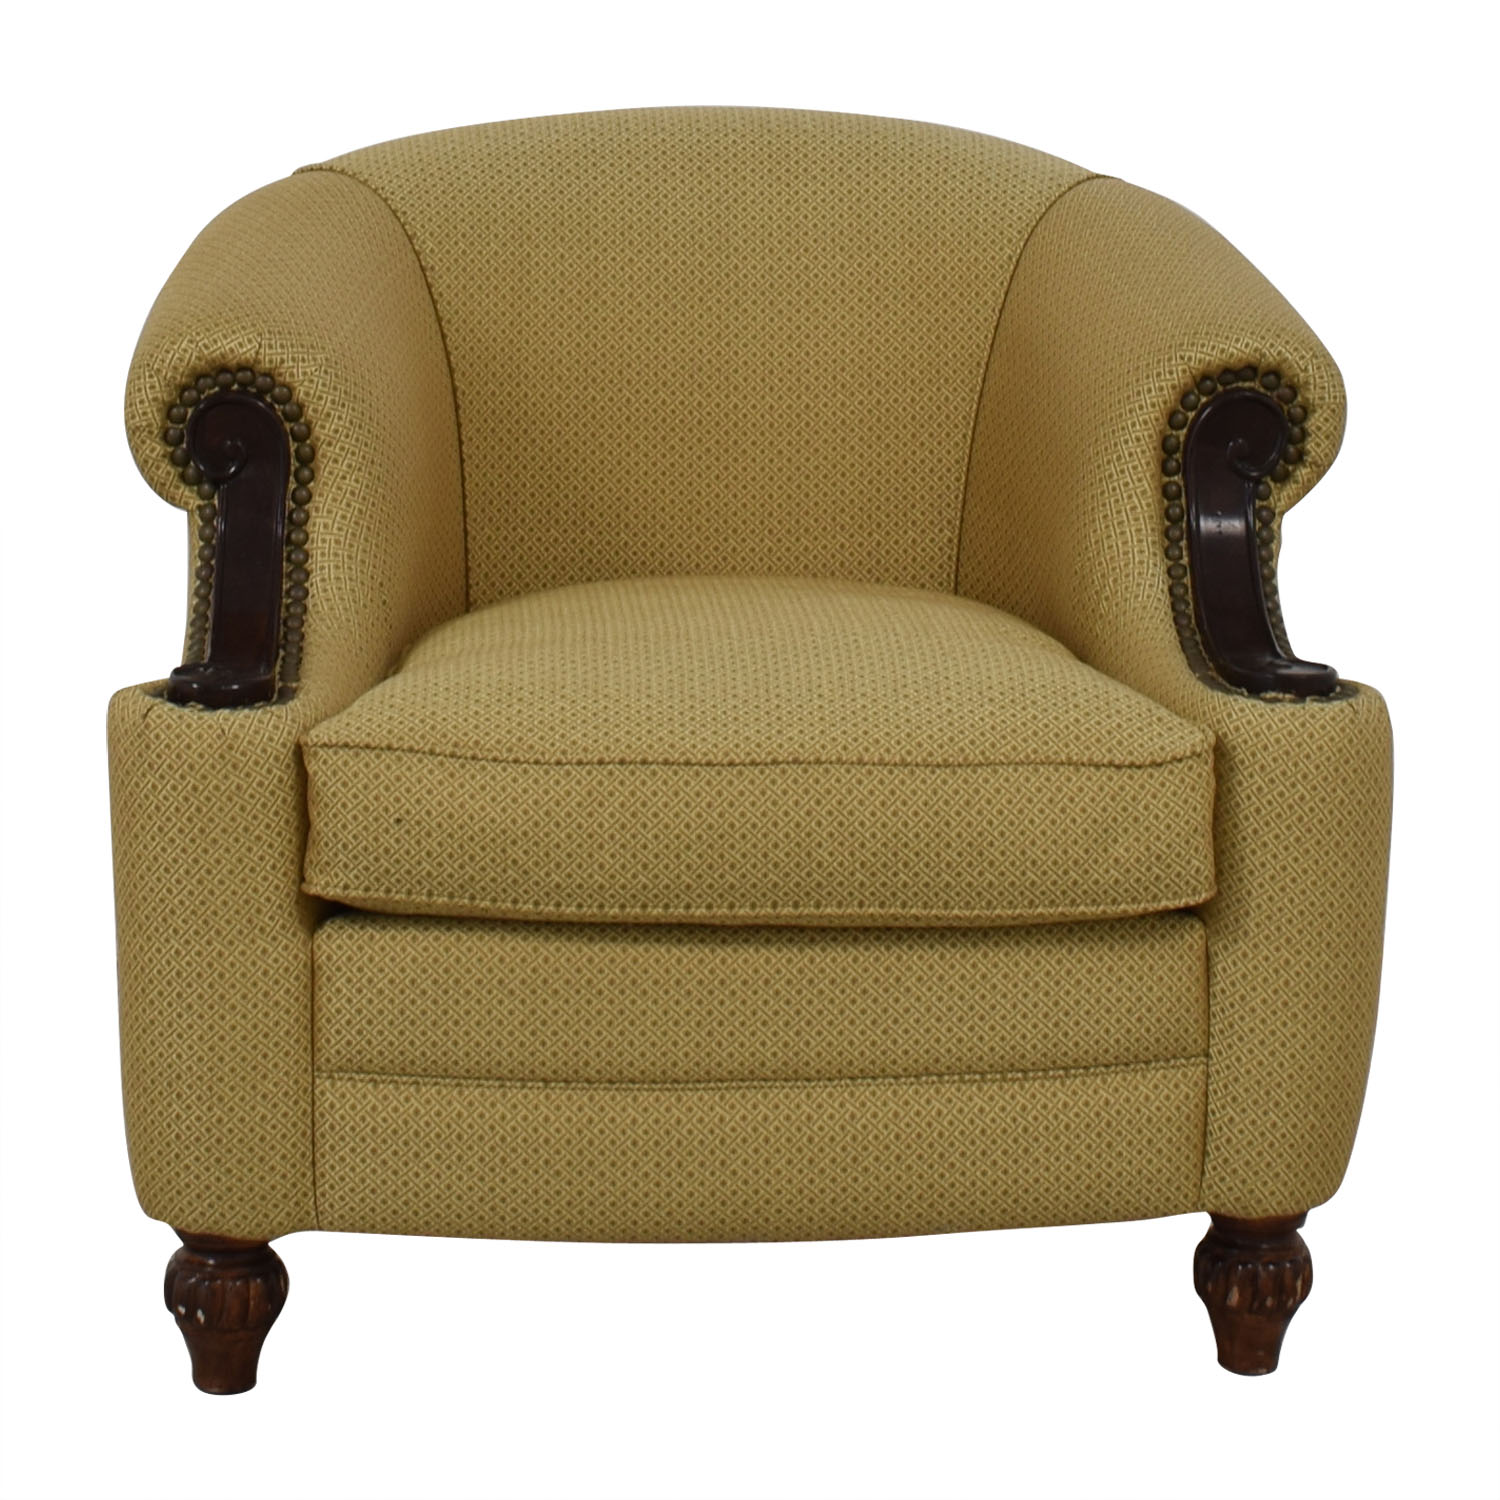 Kincaid Furniture Kincaid Furniture Studded Classic Custom Fabric Chair